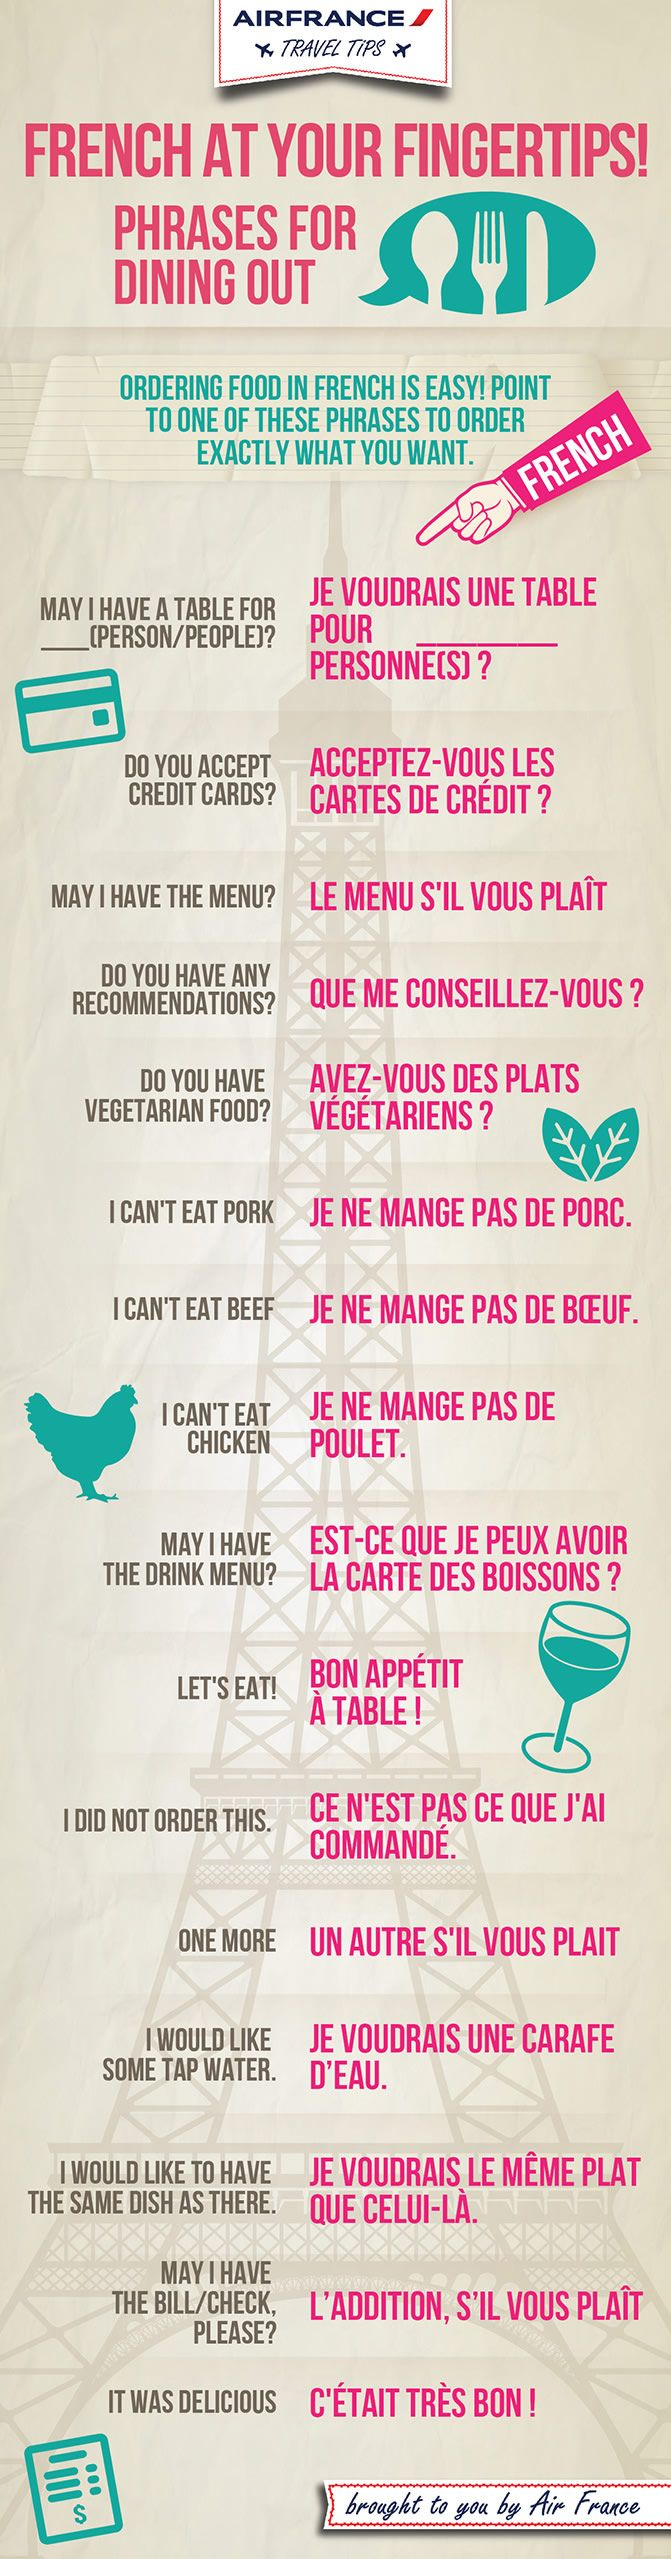 French in a restaurant.  Thanks to Air France for this.  #learnfrench #frenchlanguage  http://www.uniquelanguages.com/french-courses/4577724648